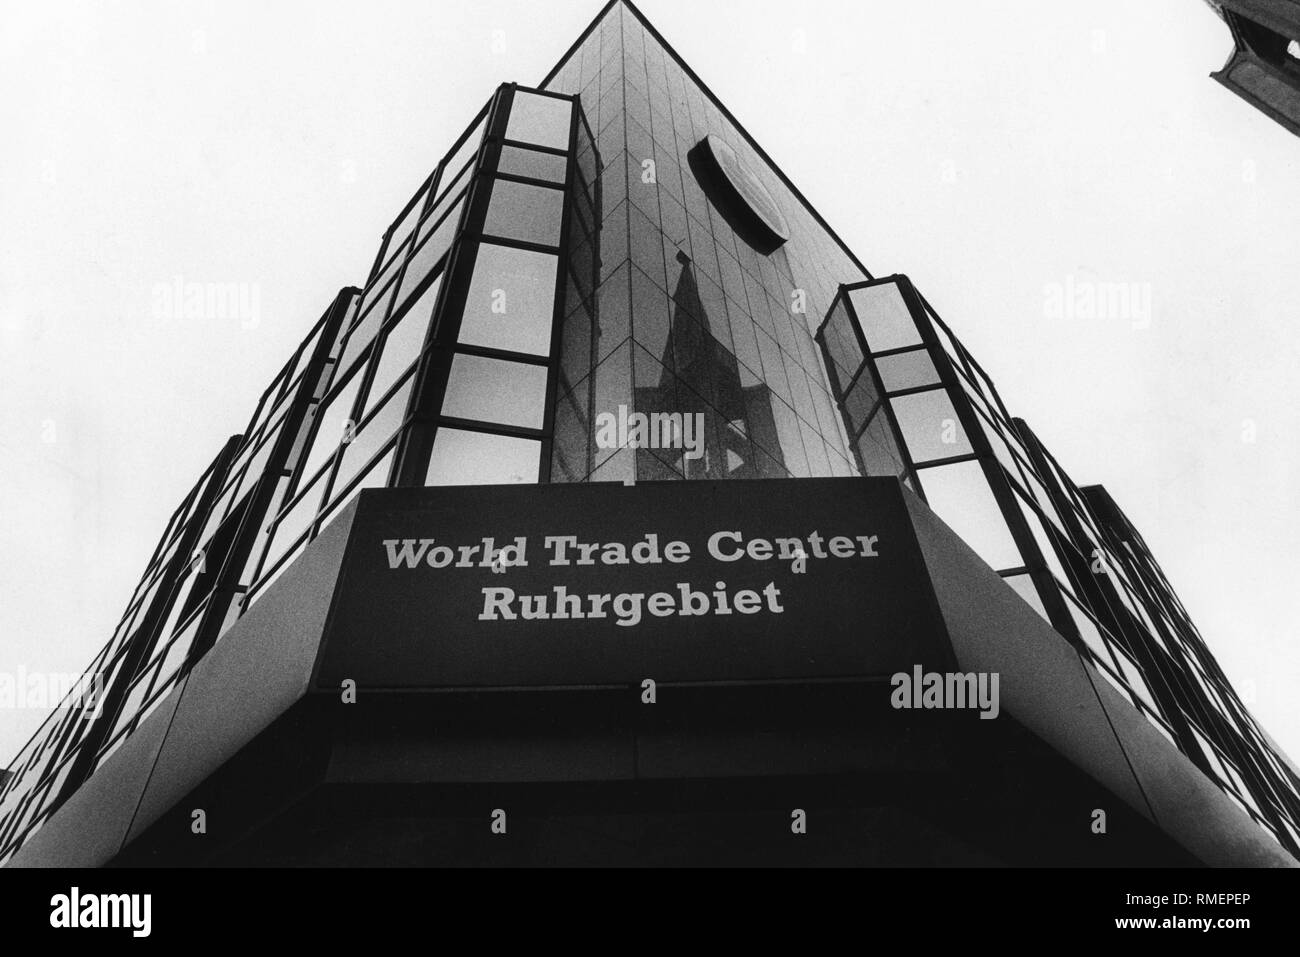 The World Trade Center Ruhrgebiet in Gelsenkirchen in September 1989. It is the first of its kind in Germany. - Stock Image